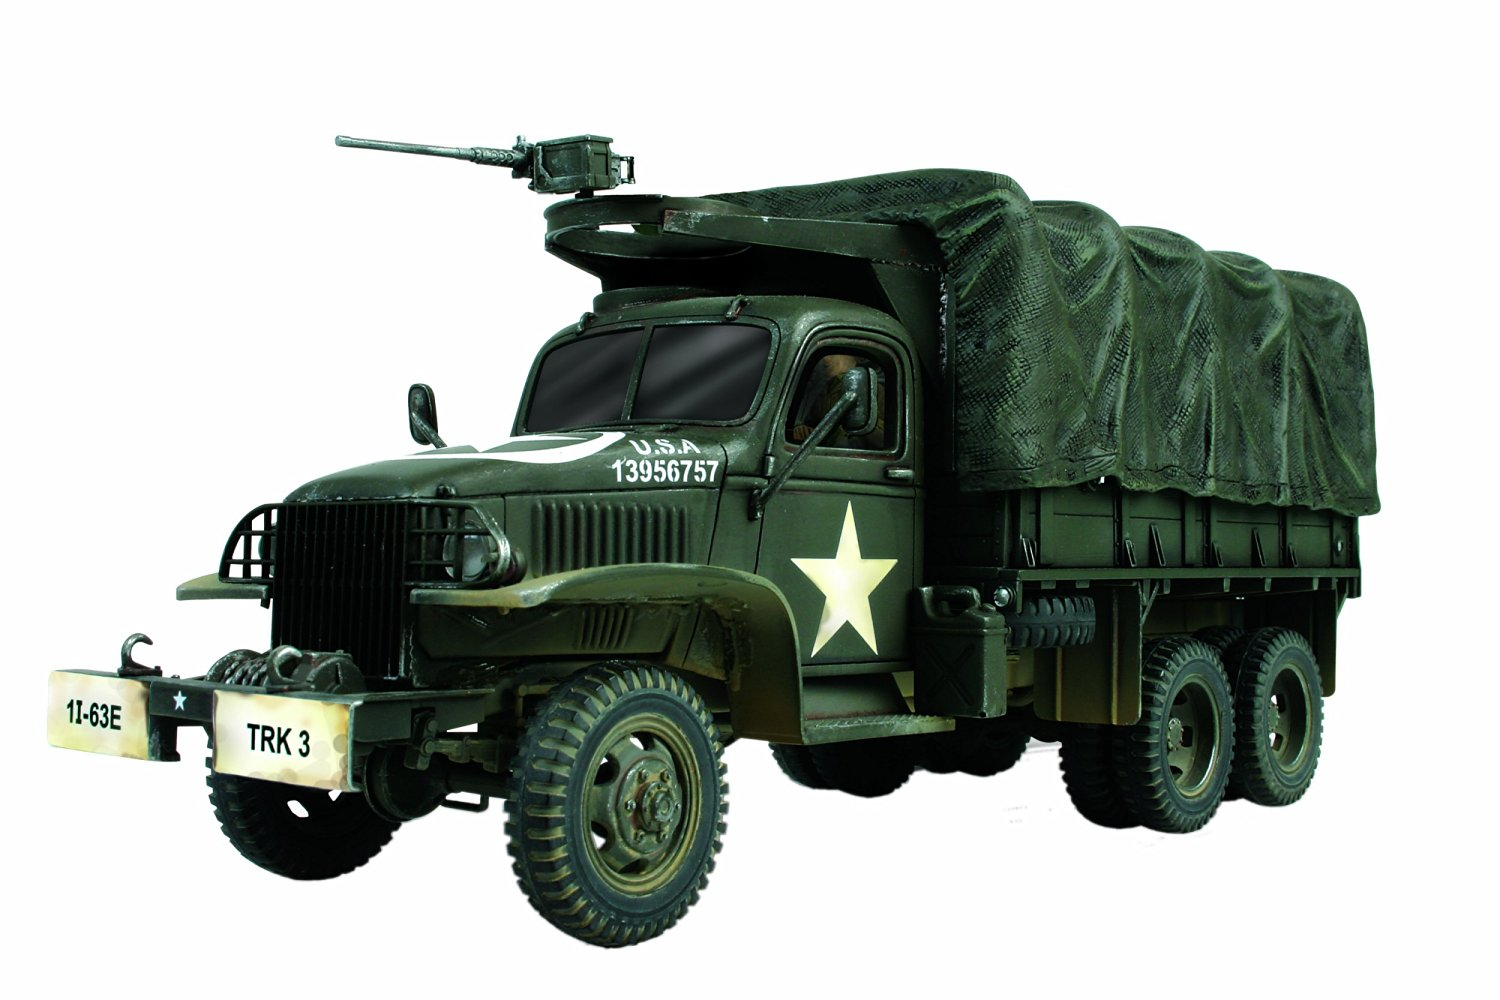 Unimax forces of Valor 1:72Nd Scale U.S. 2½ Ton Cargo Truck